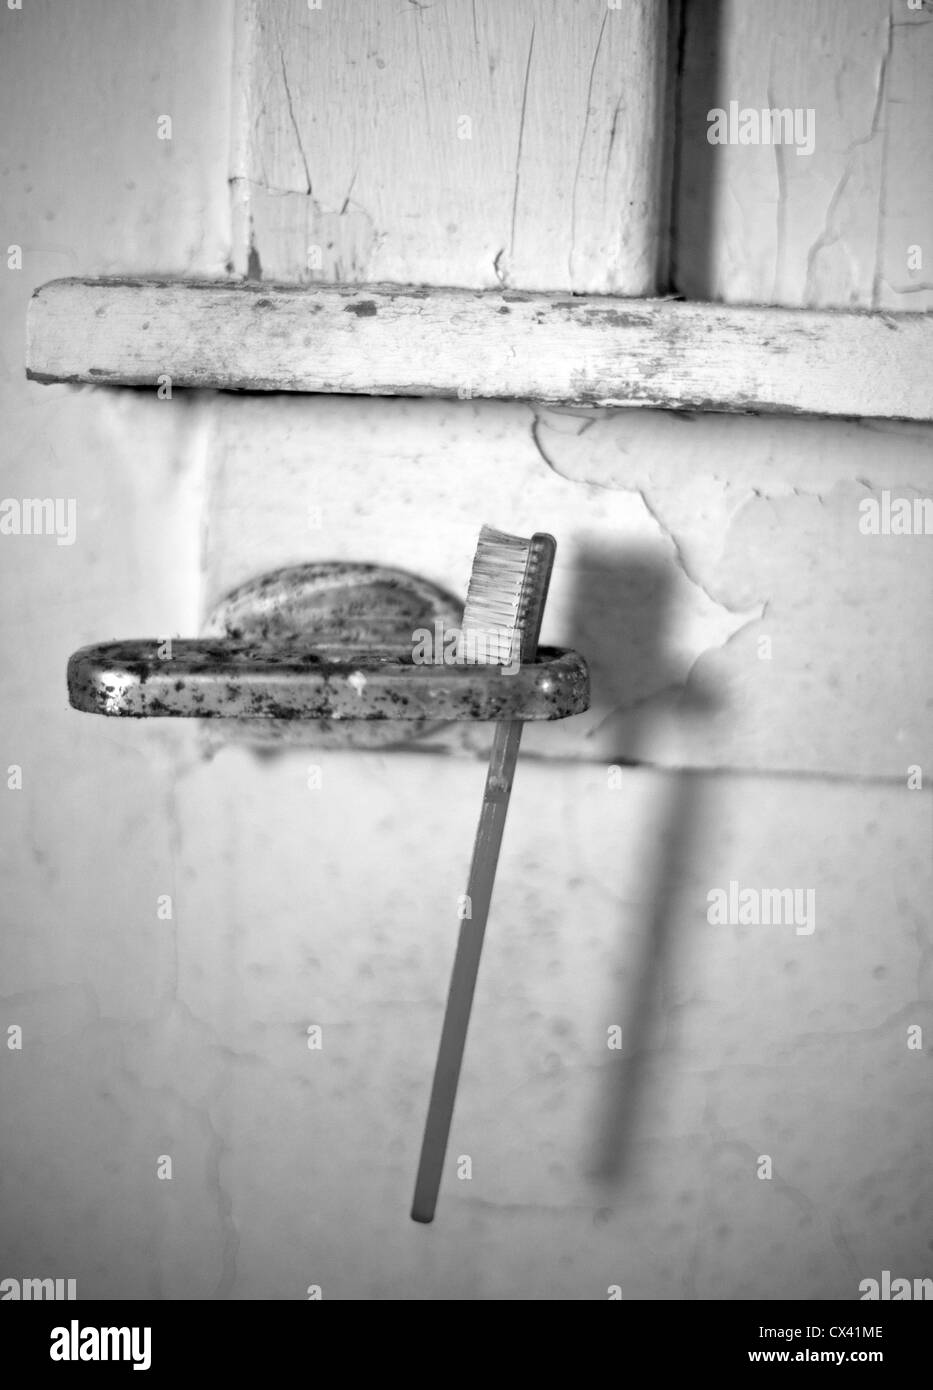 A house which has sat vacant for 20 years shows signs of neglect. - Stock Image